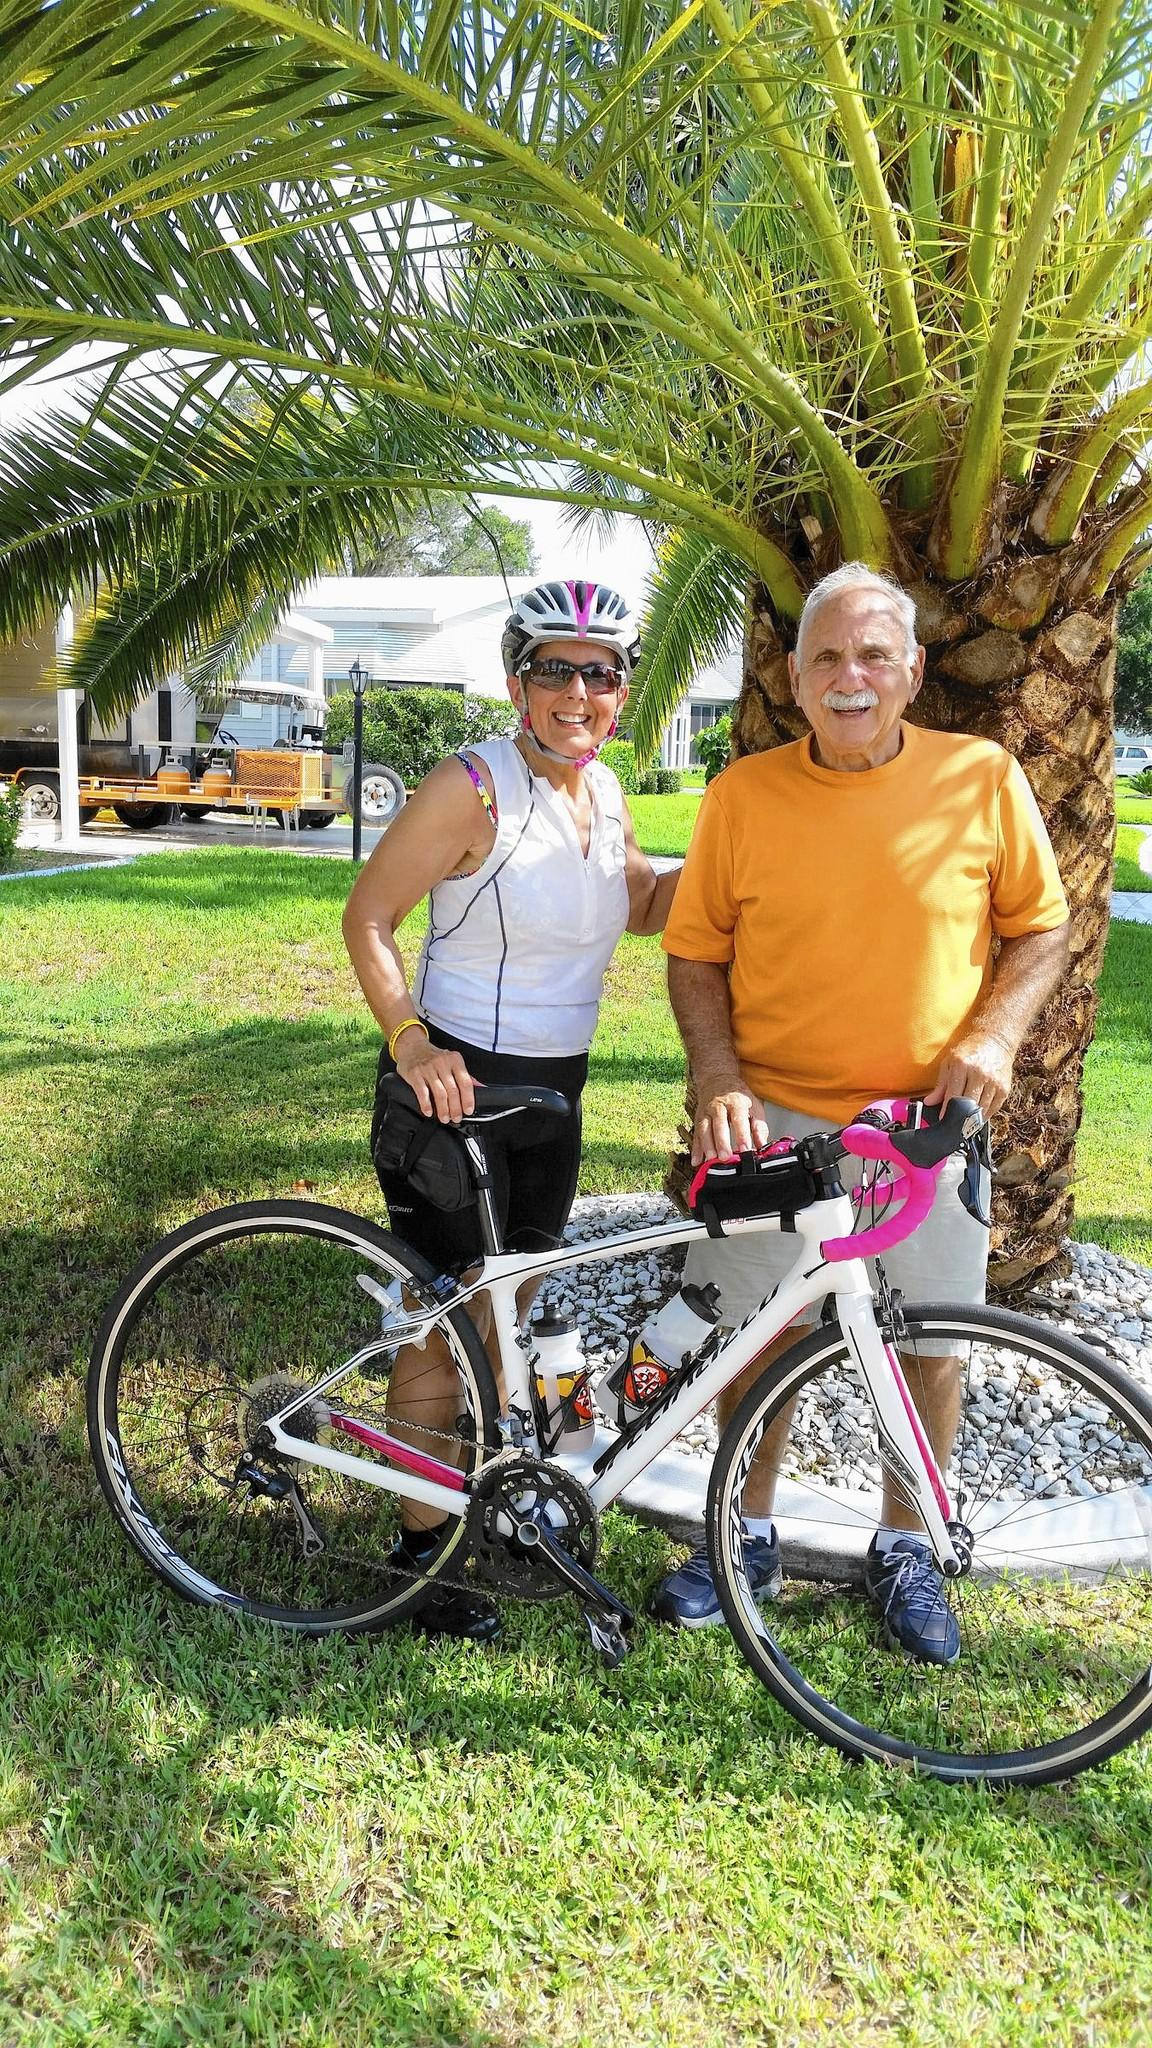 Cathy Teodosio of Fells Point, shown on a visit to Florida with her father Joseph Teodosio, is training for the Sept. 13 Ride to Conquer Cancer.